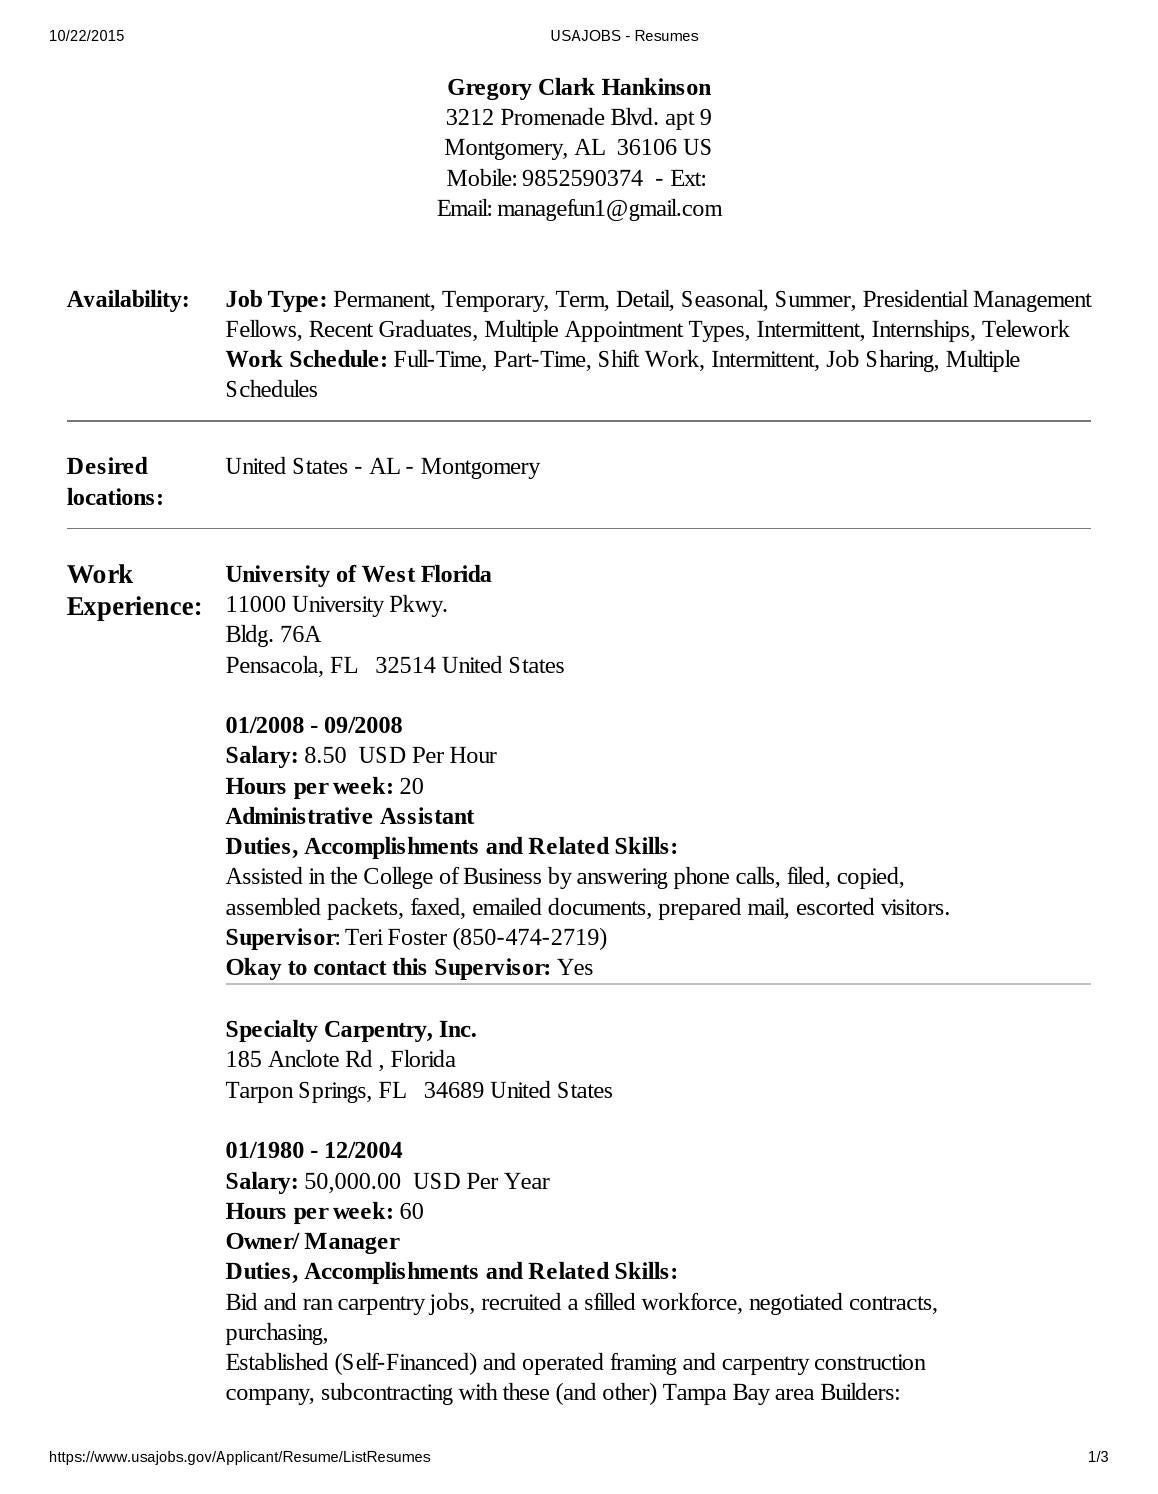 Resume help for www usajobs com